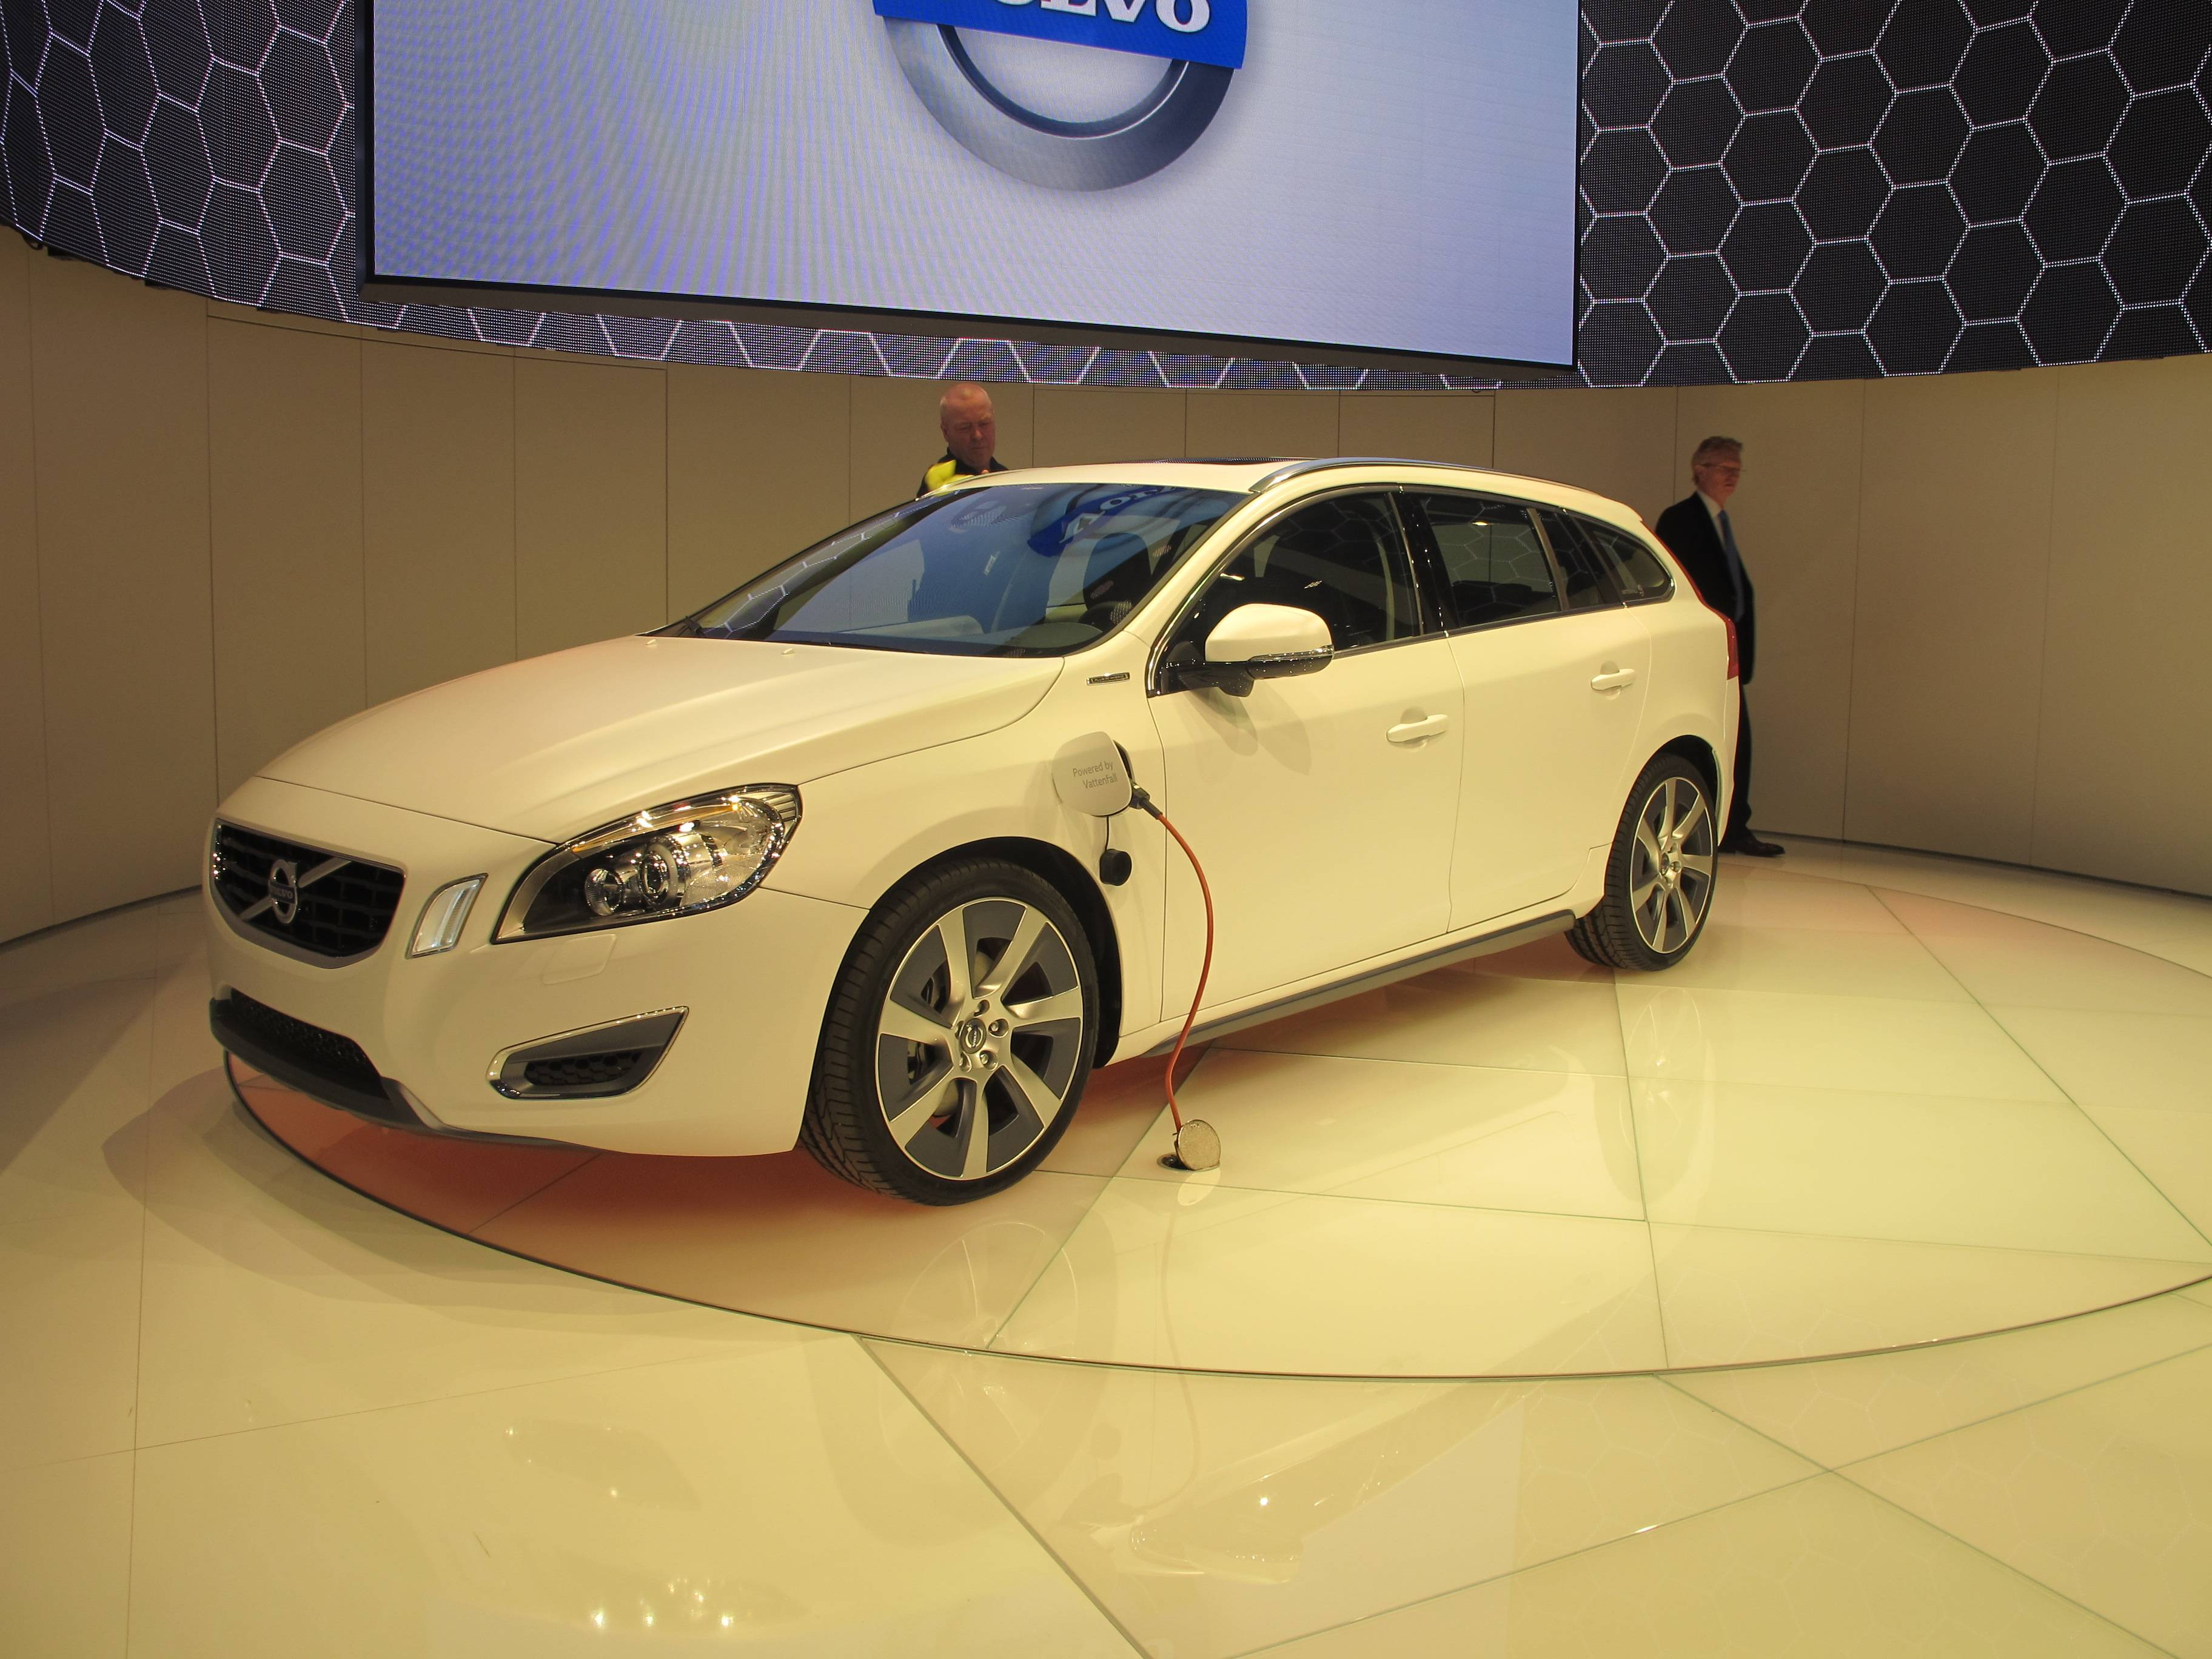 Geneva Motor Show - World's Safest Electric Car - Volvo V60 Plug-in